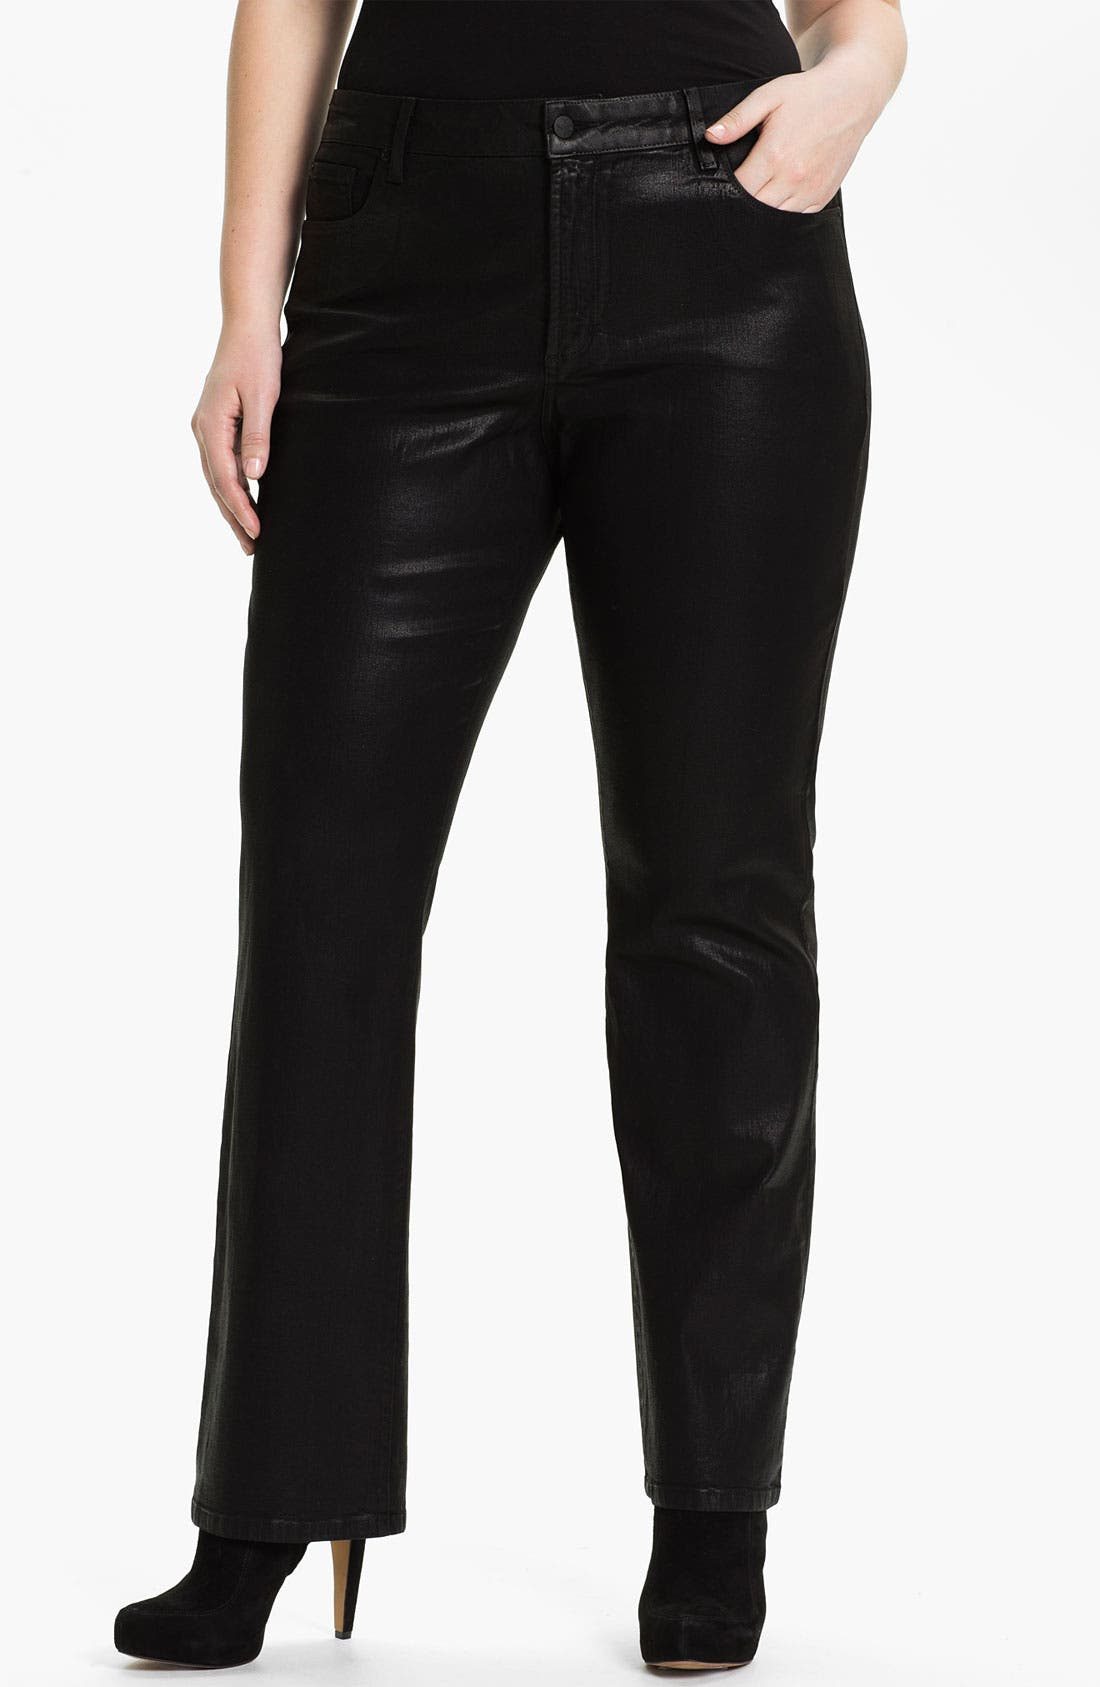 Alternate Image 1 Selected - NYDJ 'Marilyn' Coated Bootcut Jeans (Plus)